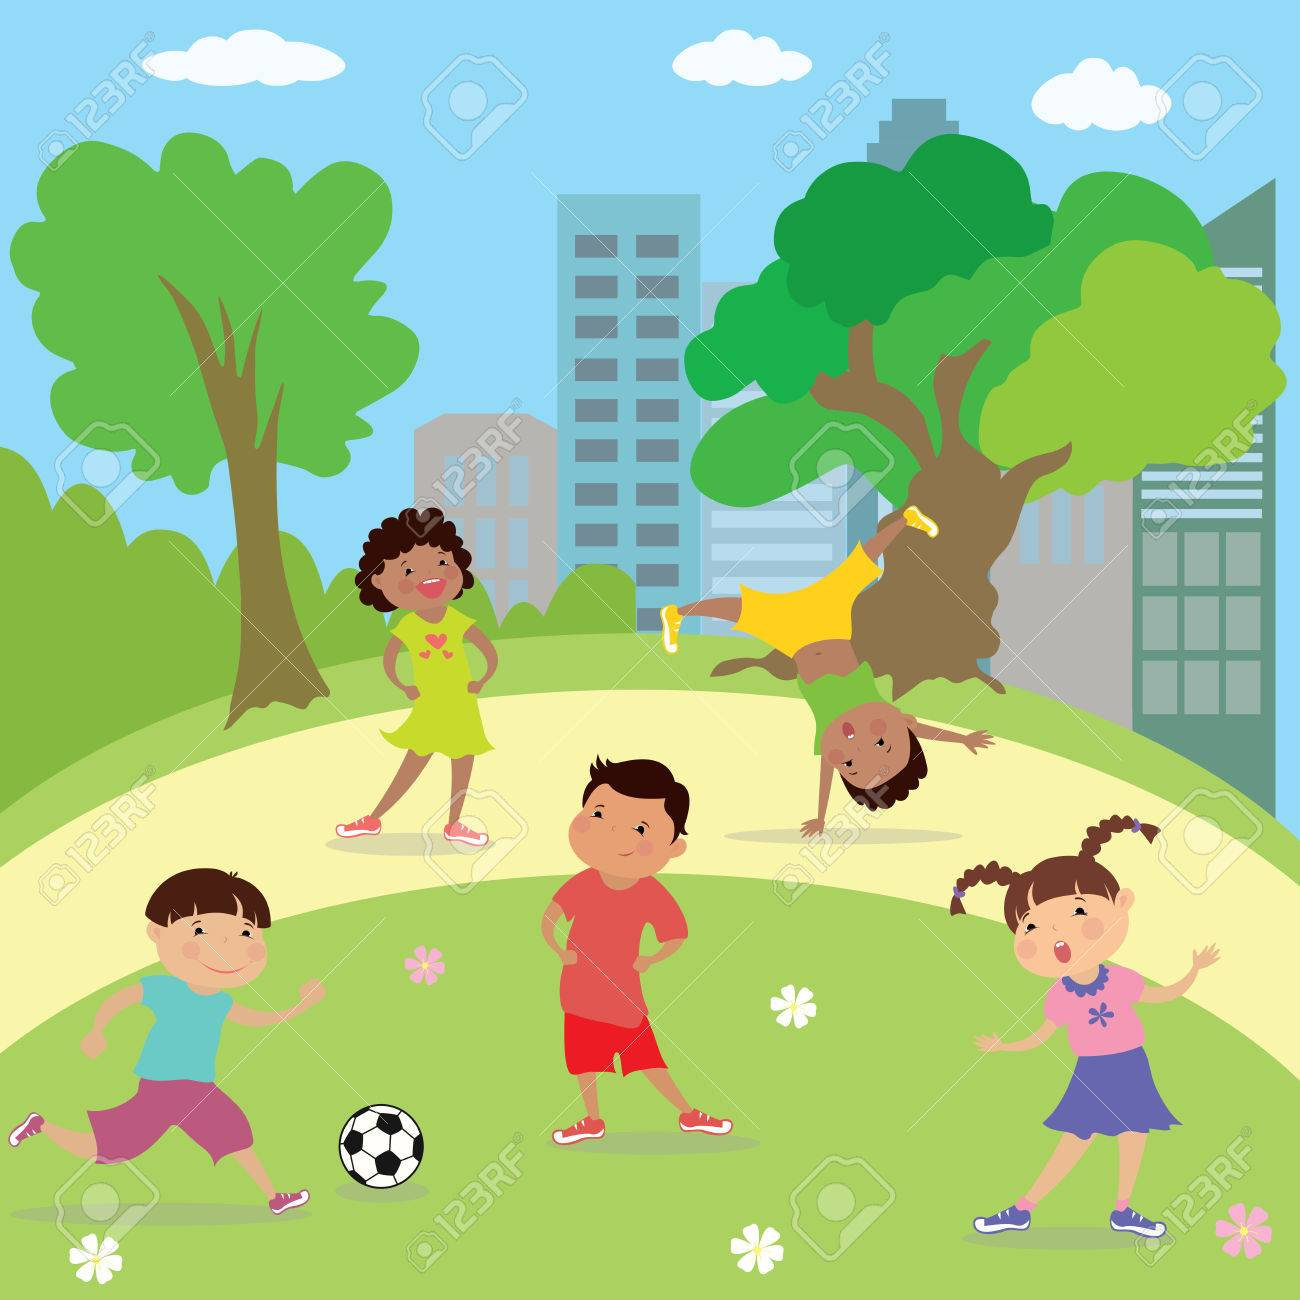 children playing in park,boys and girls different races,cartoon